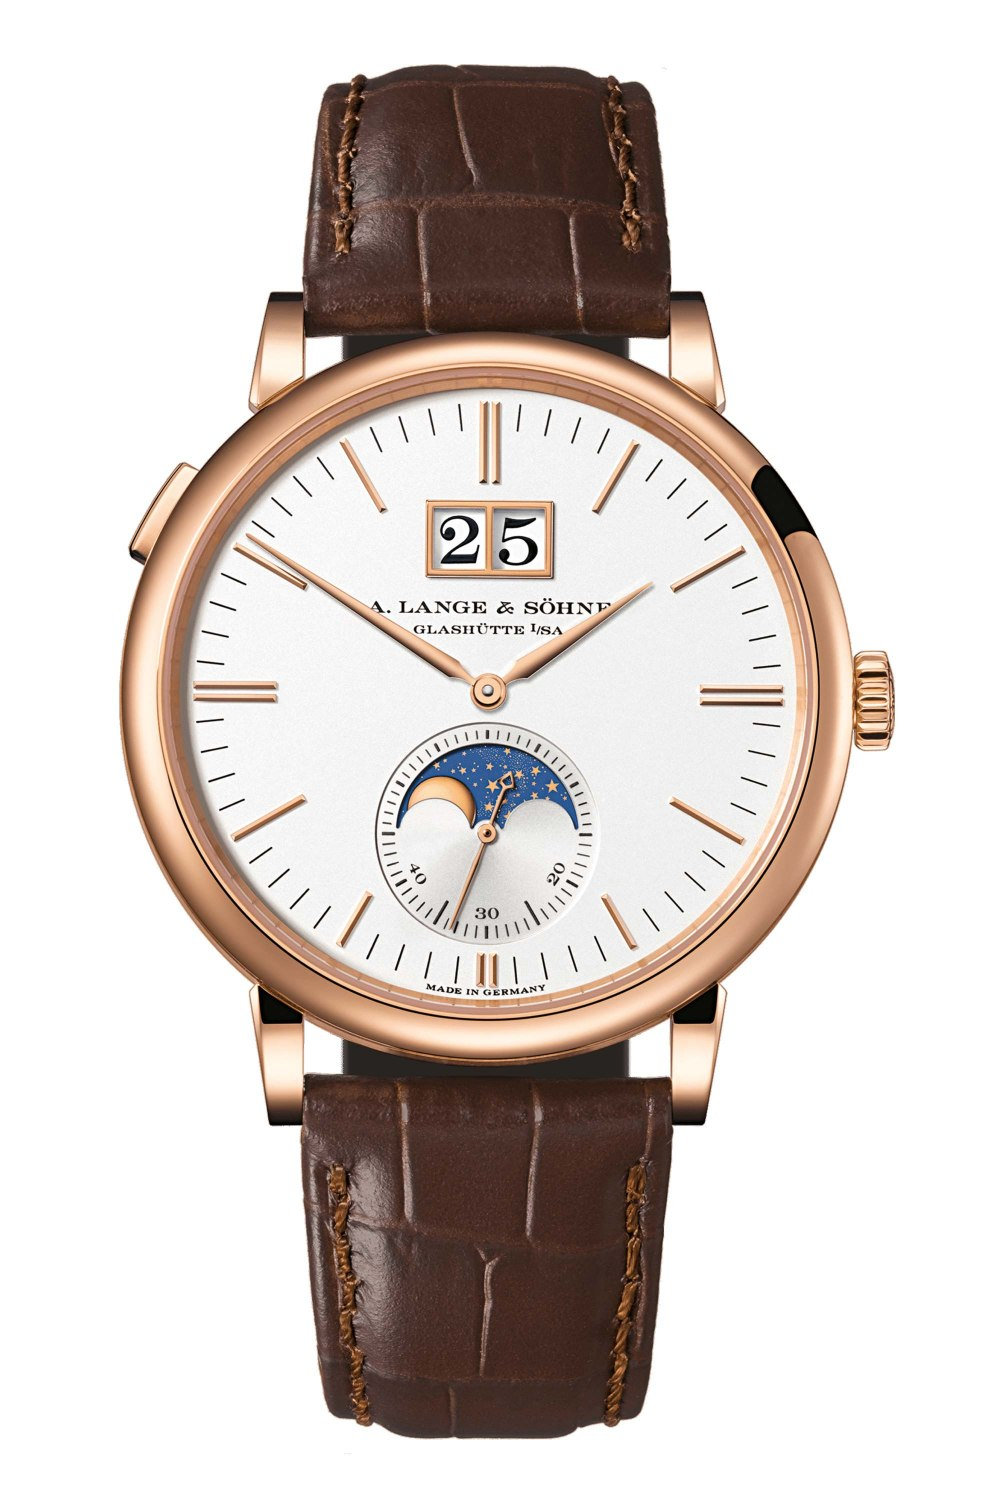 A. LANGE & SÖHNE Saxonia Outsize Date Rose Gold 384.032